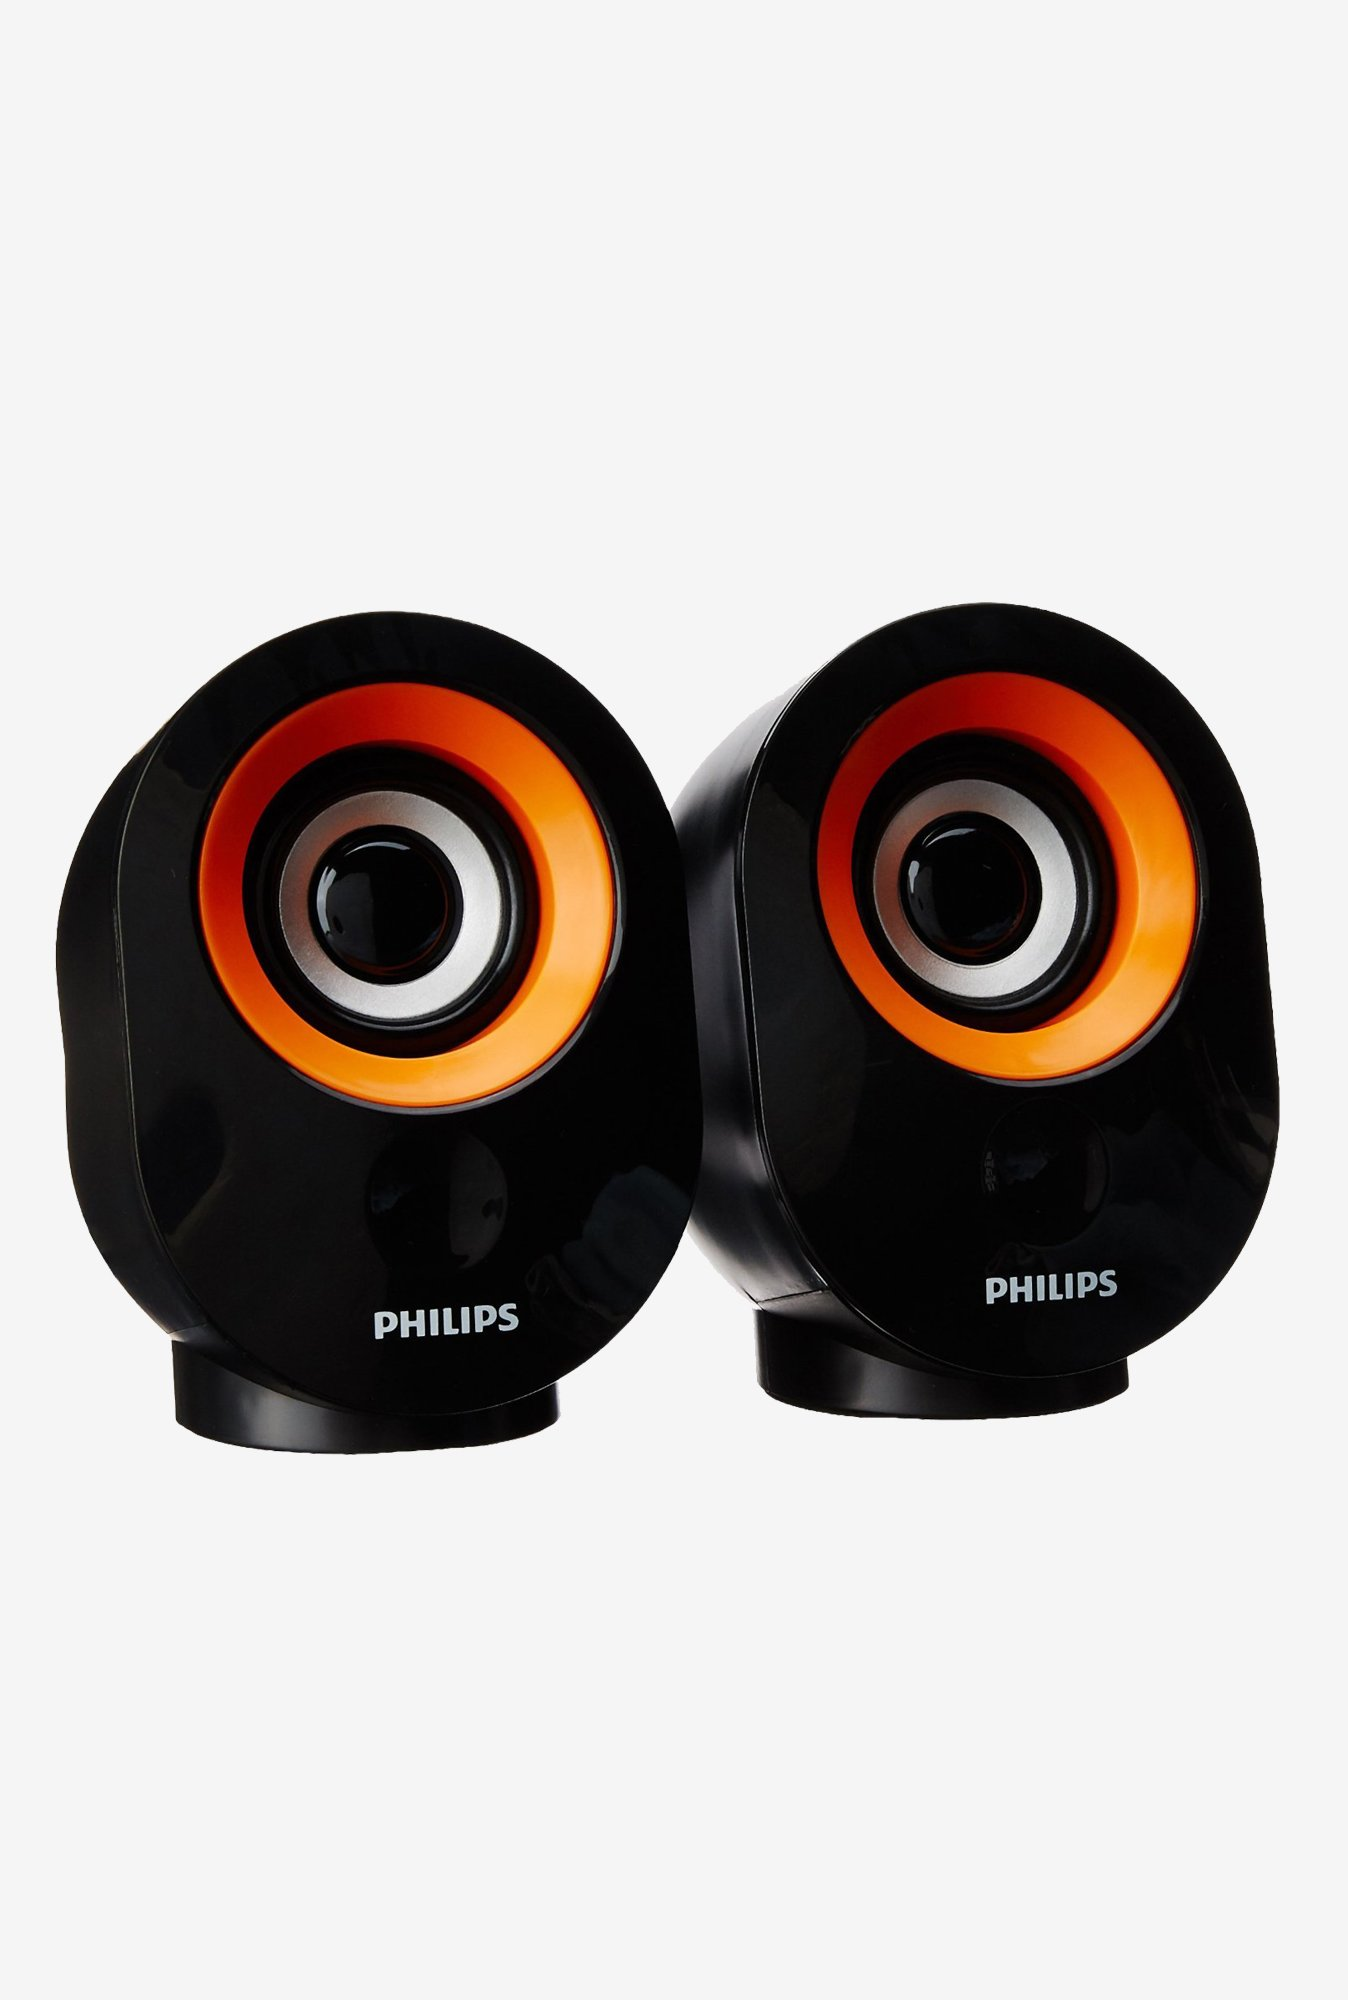 Philips SPA50G/94 2.0 Channel Speakers (Orange)